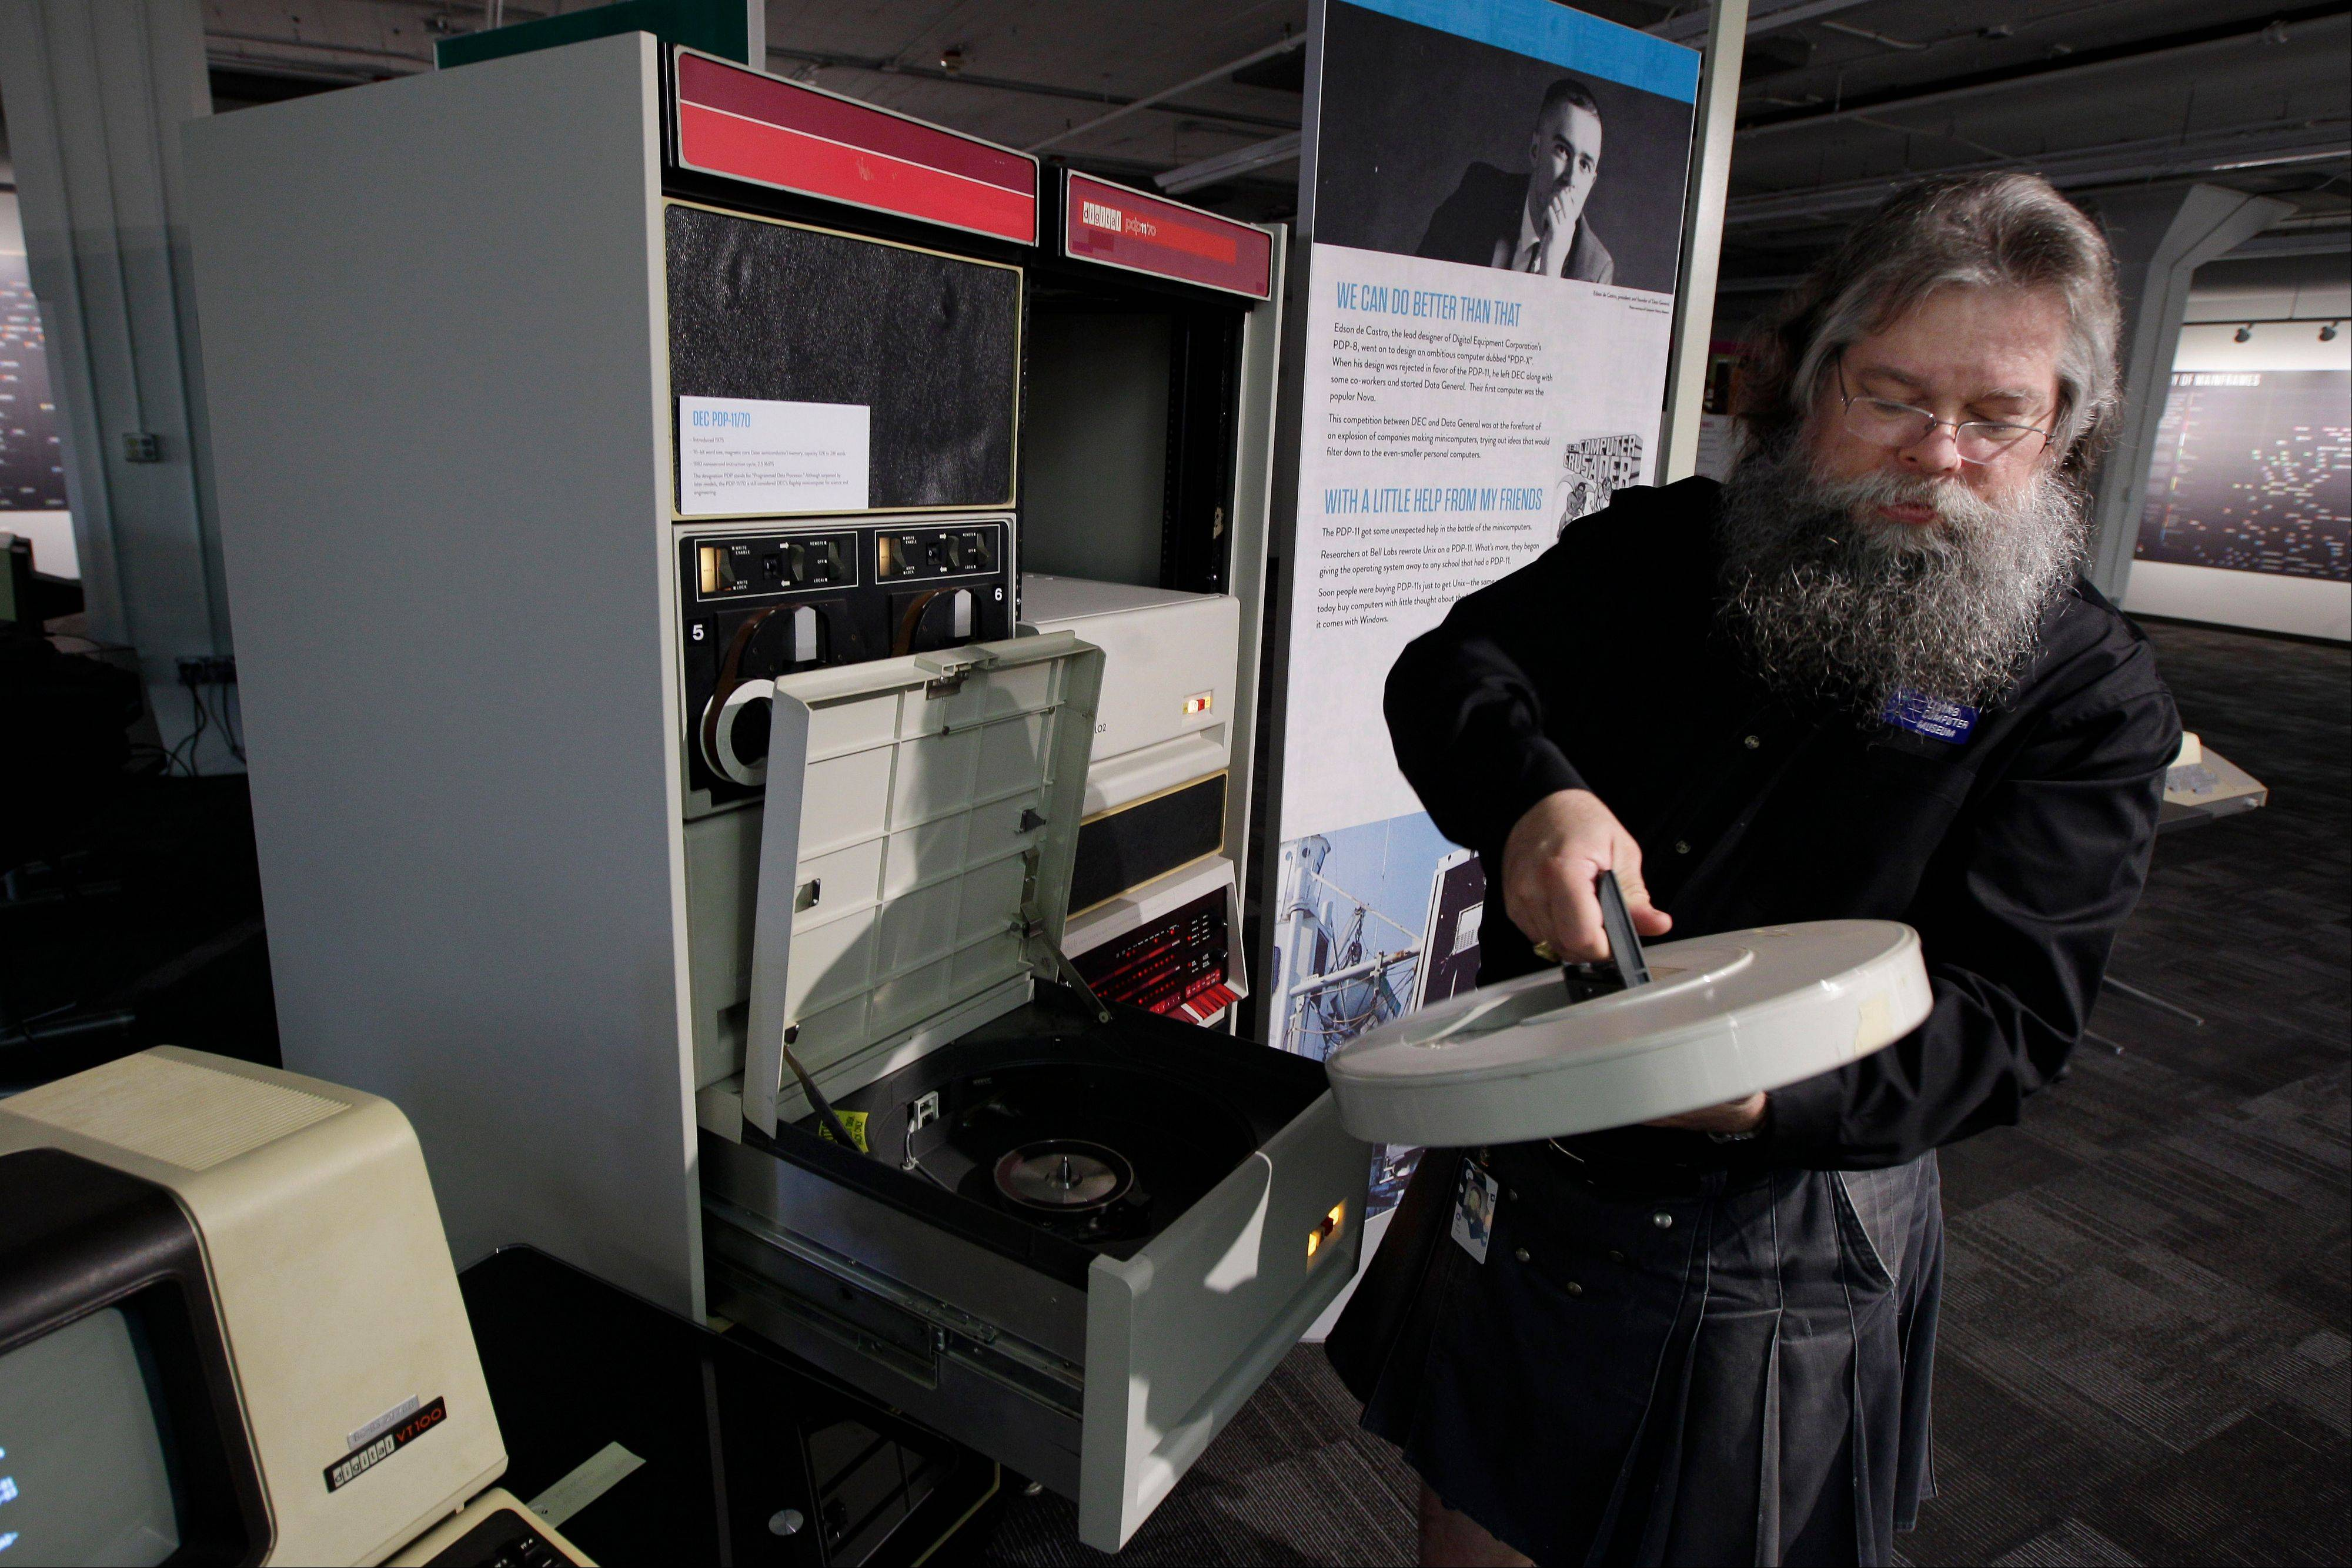 Ian King, senior vintage systems engineer at the Living Computer Museum in Seattle, loads a large disk drive into a working DEC 11/70 minicomputer from 1975. The machine is part of the collection of running computers at Paul Allen�s newly opened Living Computer Museum.